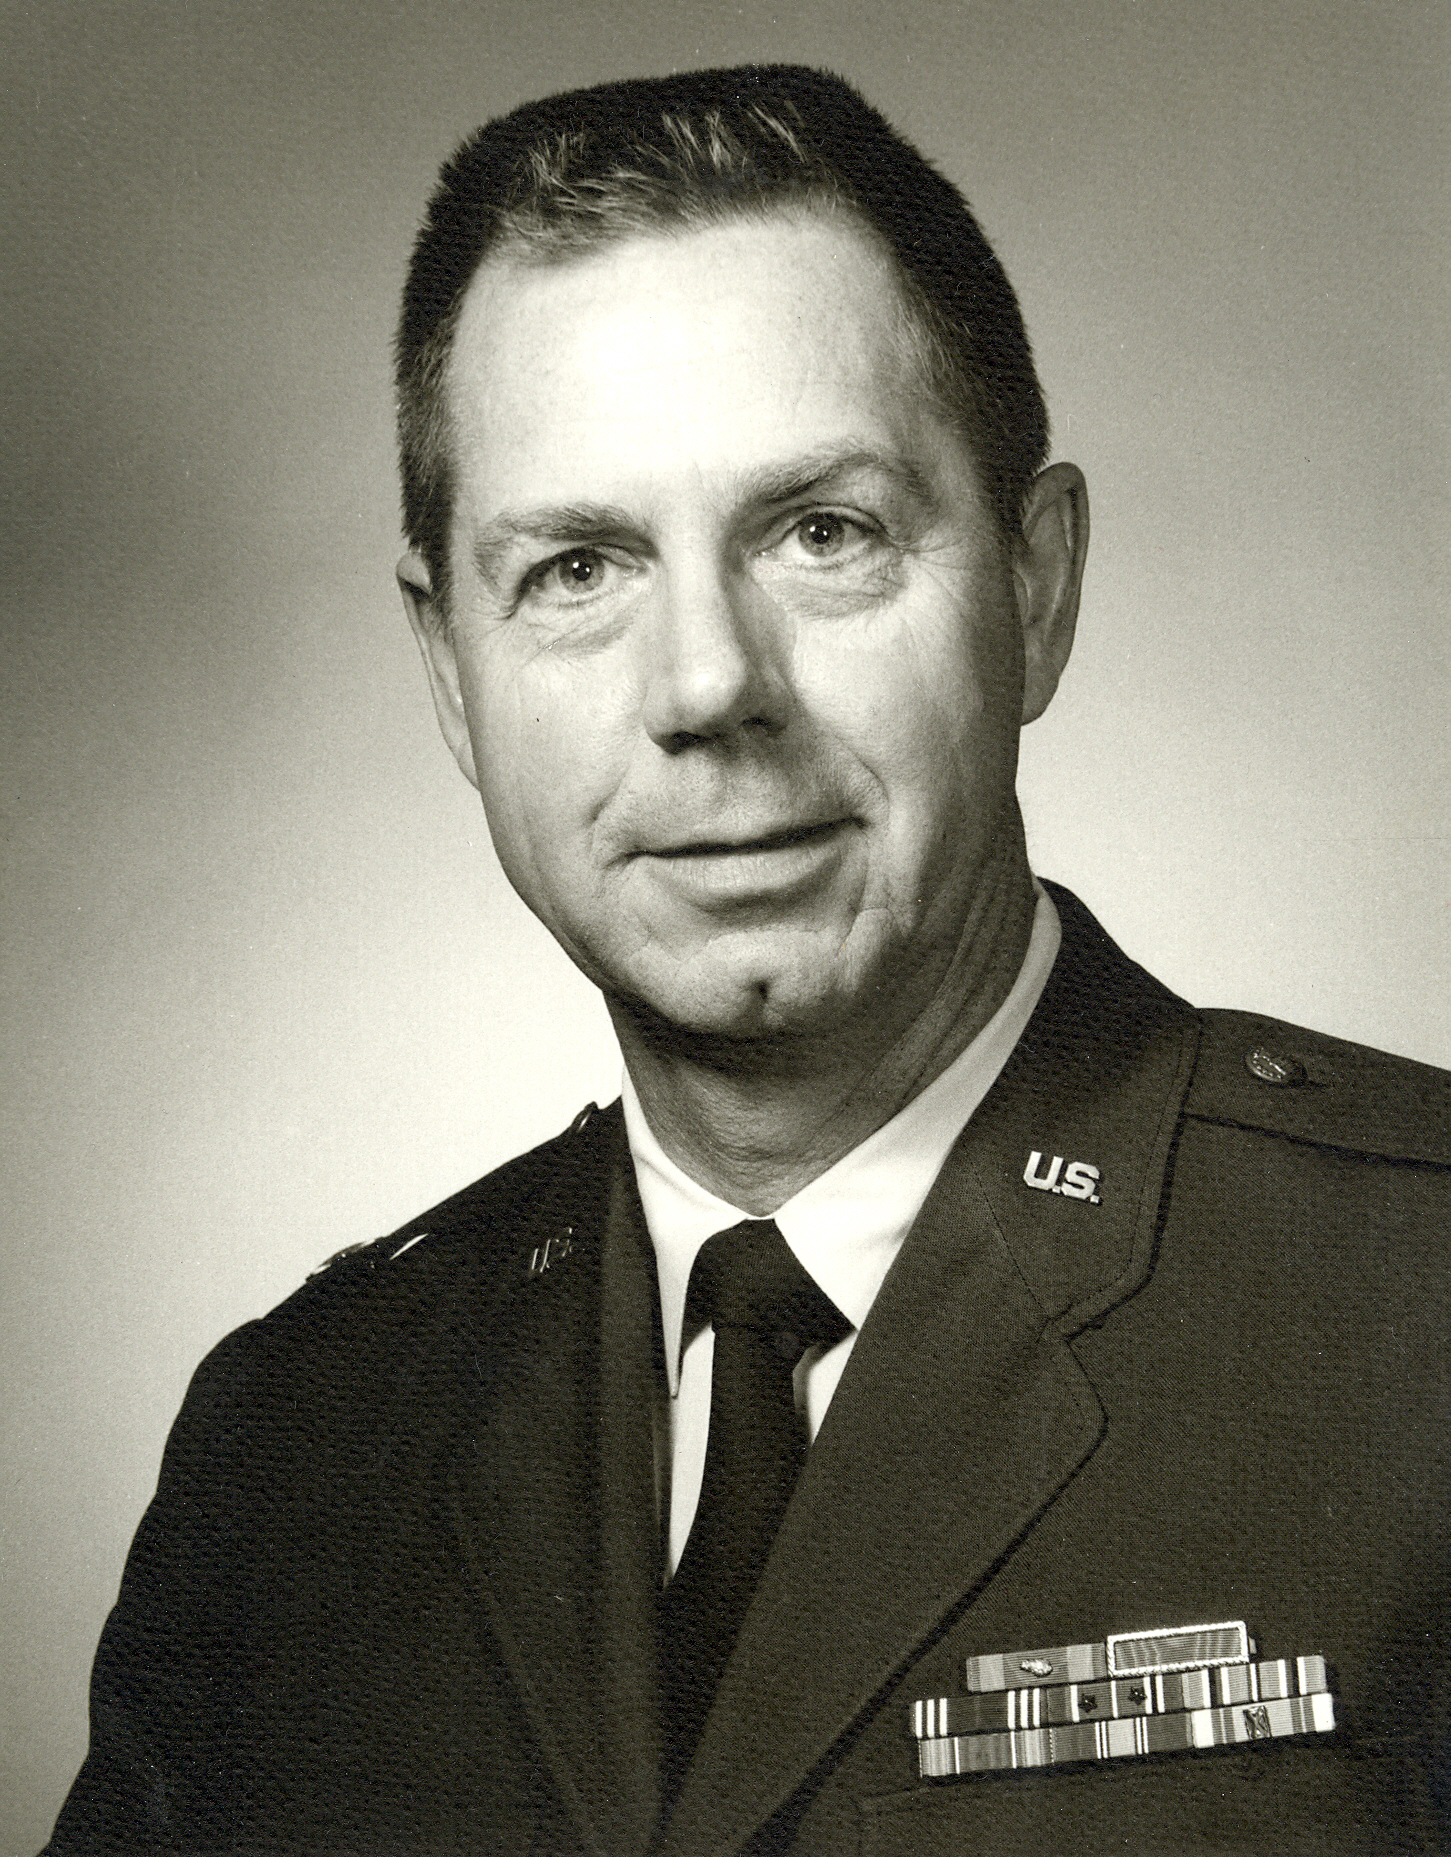 Col. Robert A. Larsen, USAF, Retired